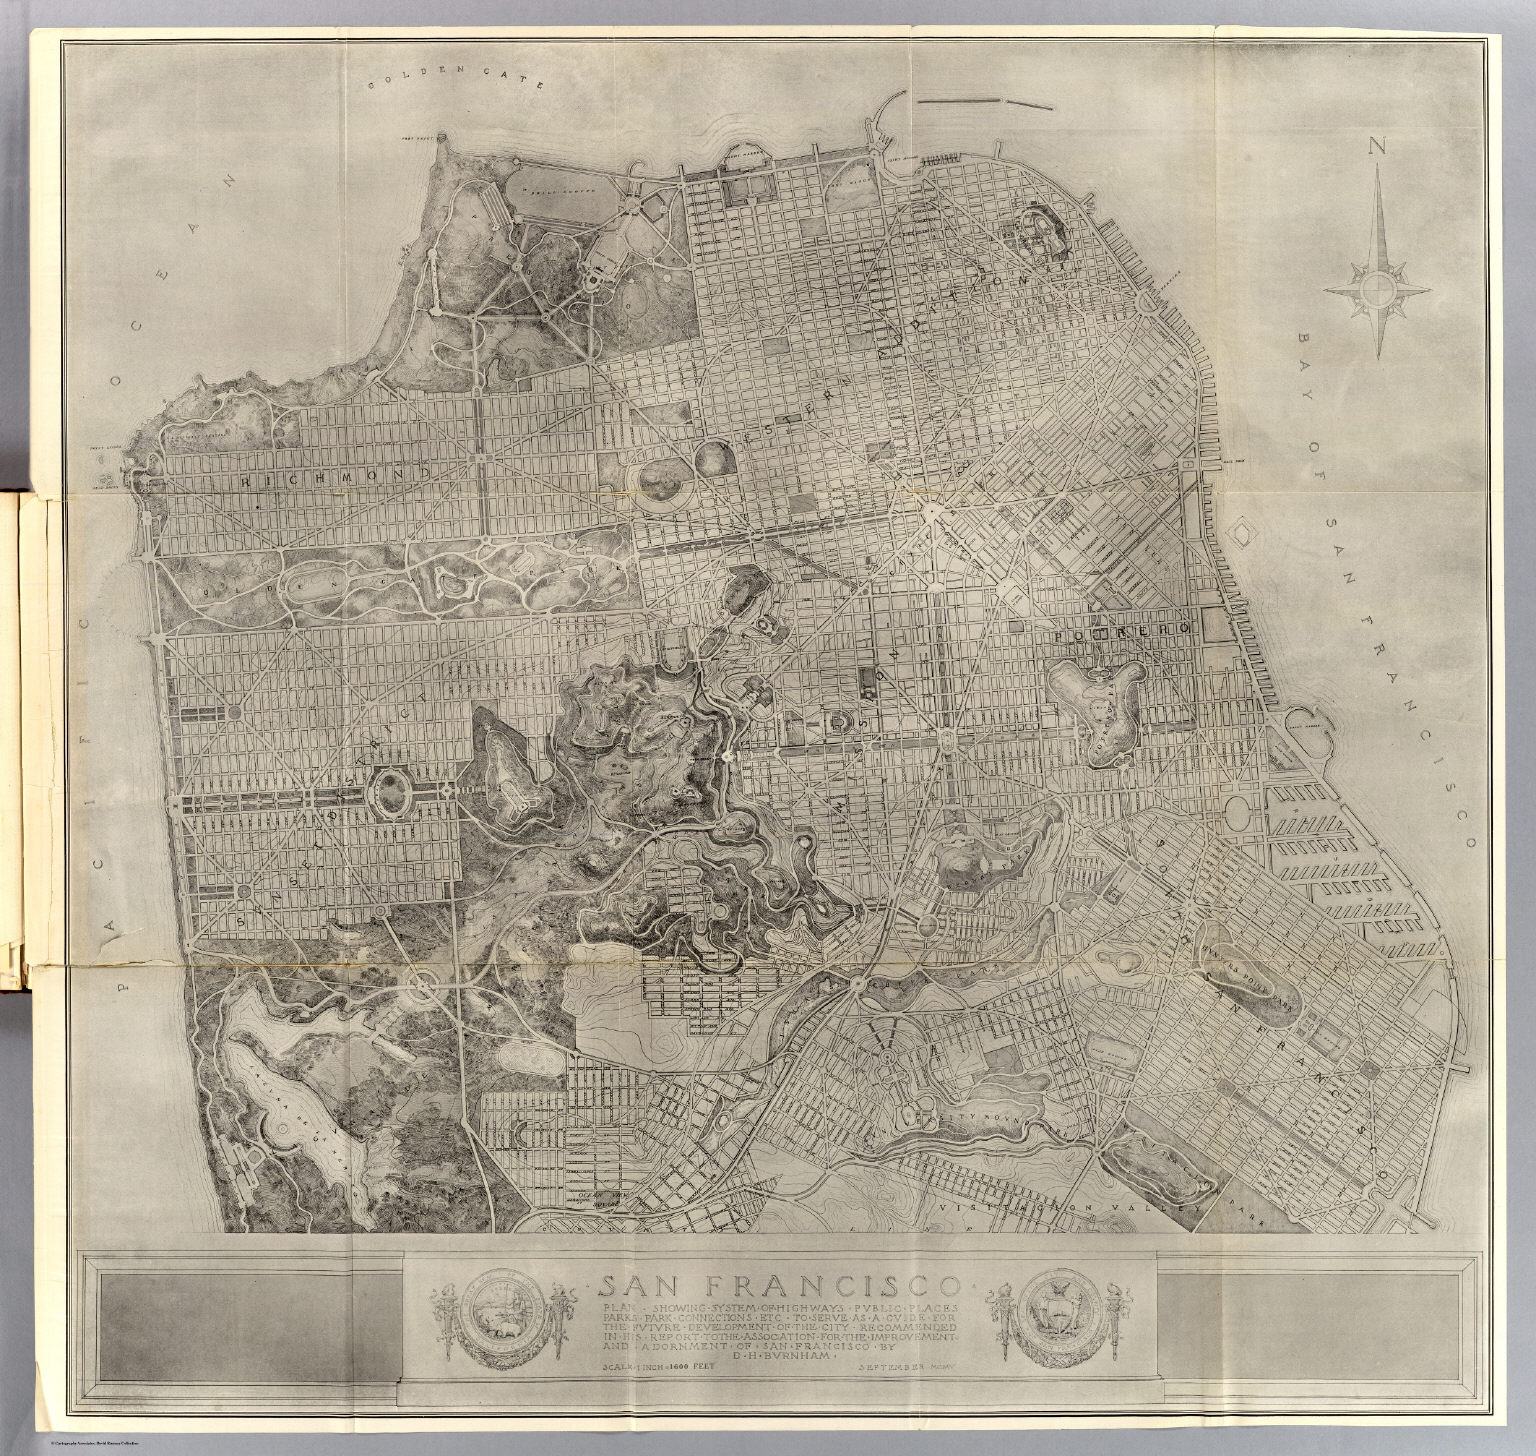 California Map Fault Lines%0A San Francisco Plan David Rumsey Historical Map Collection          RUMSEY